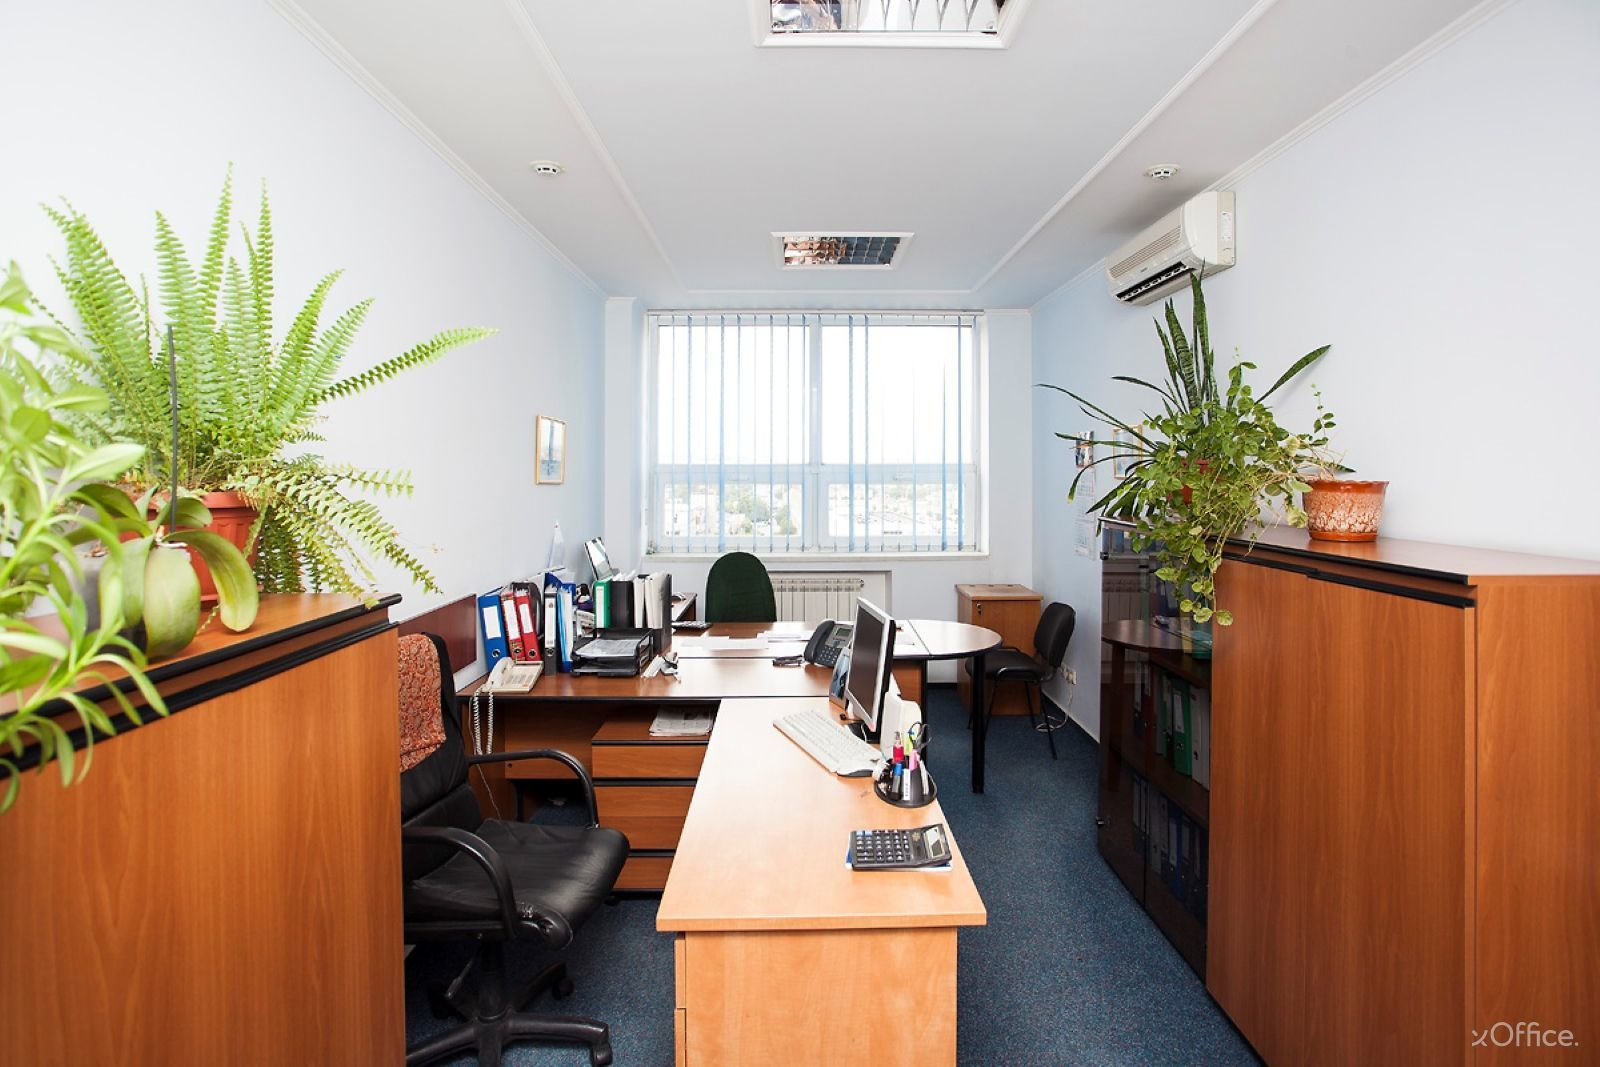 bc_pochayna_center_bandery_6_xoffice_12